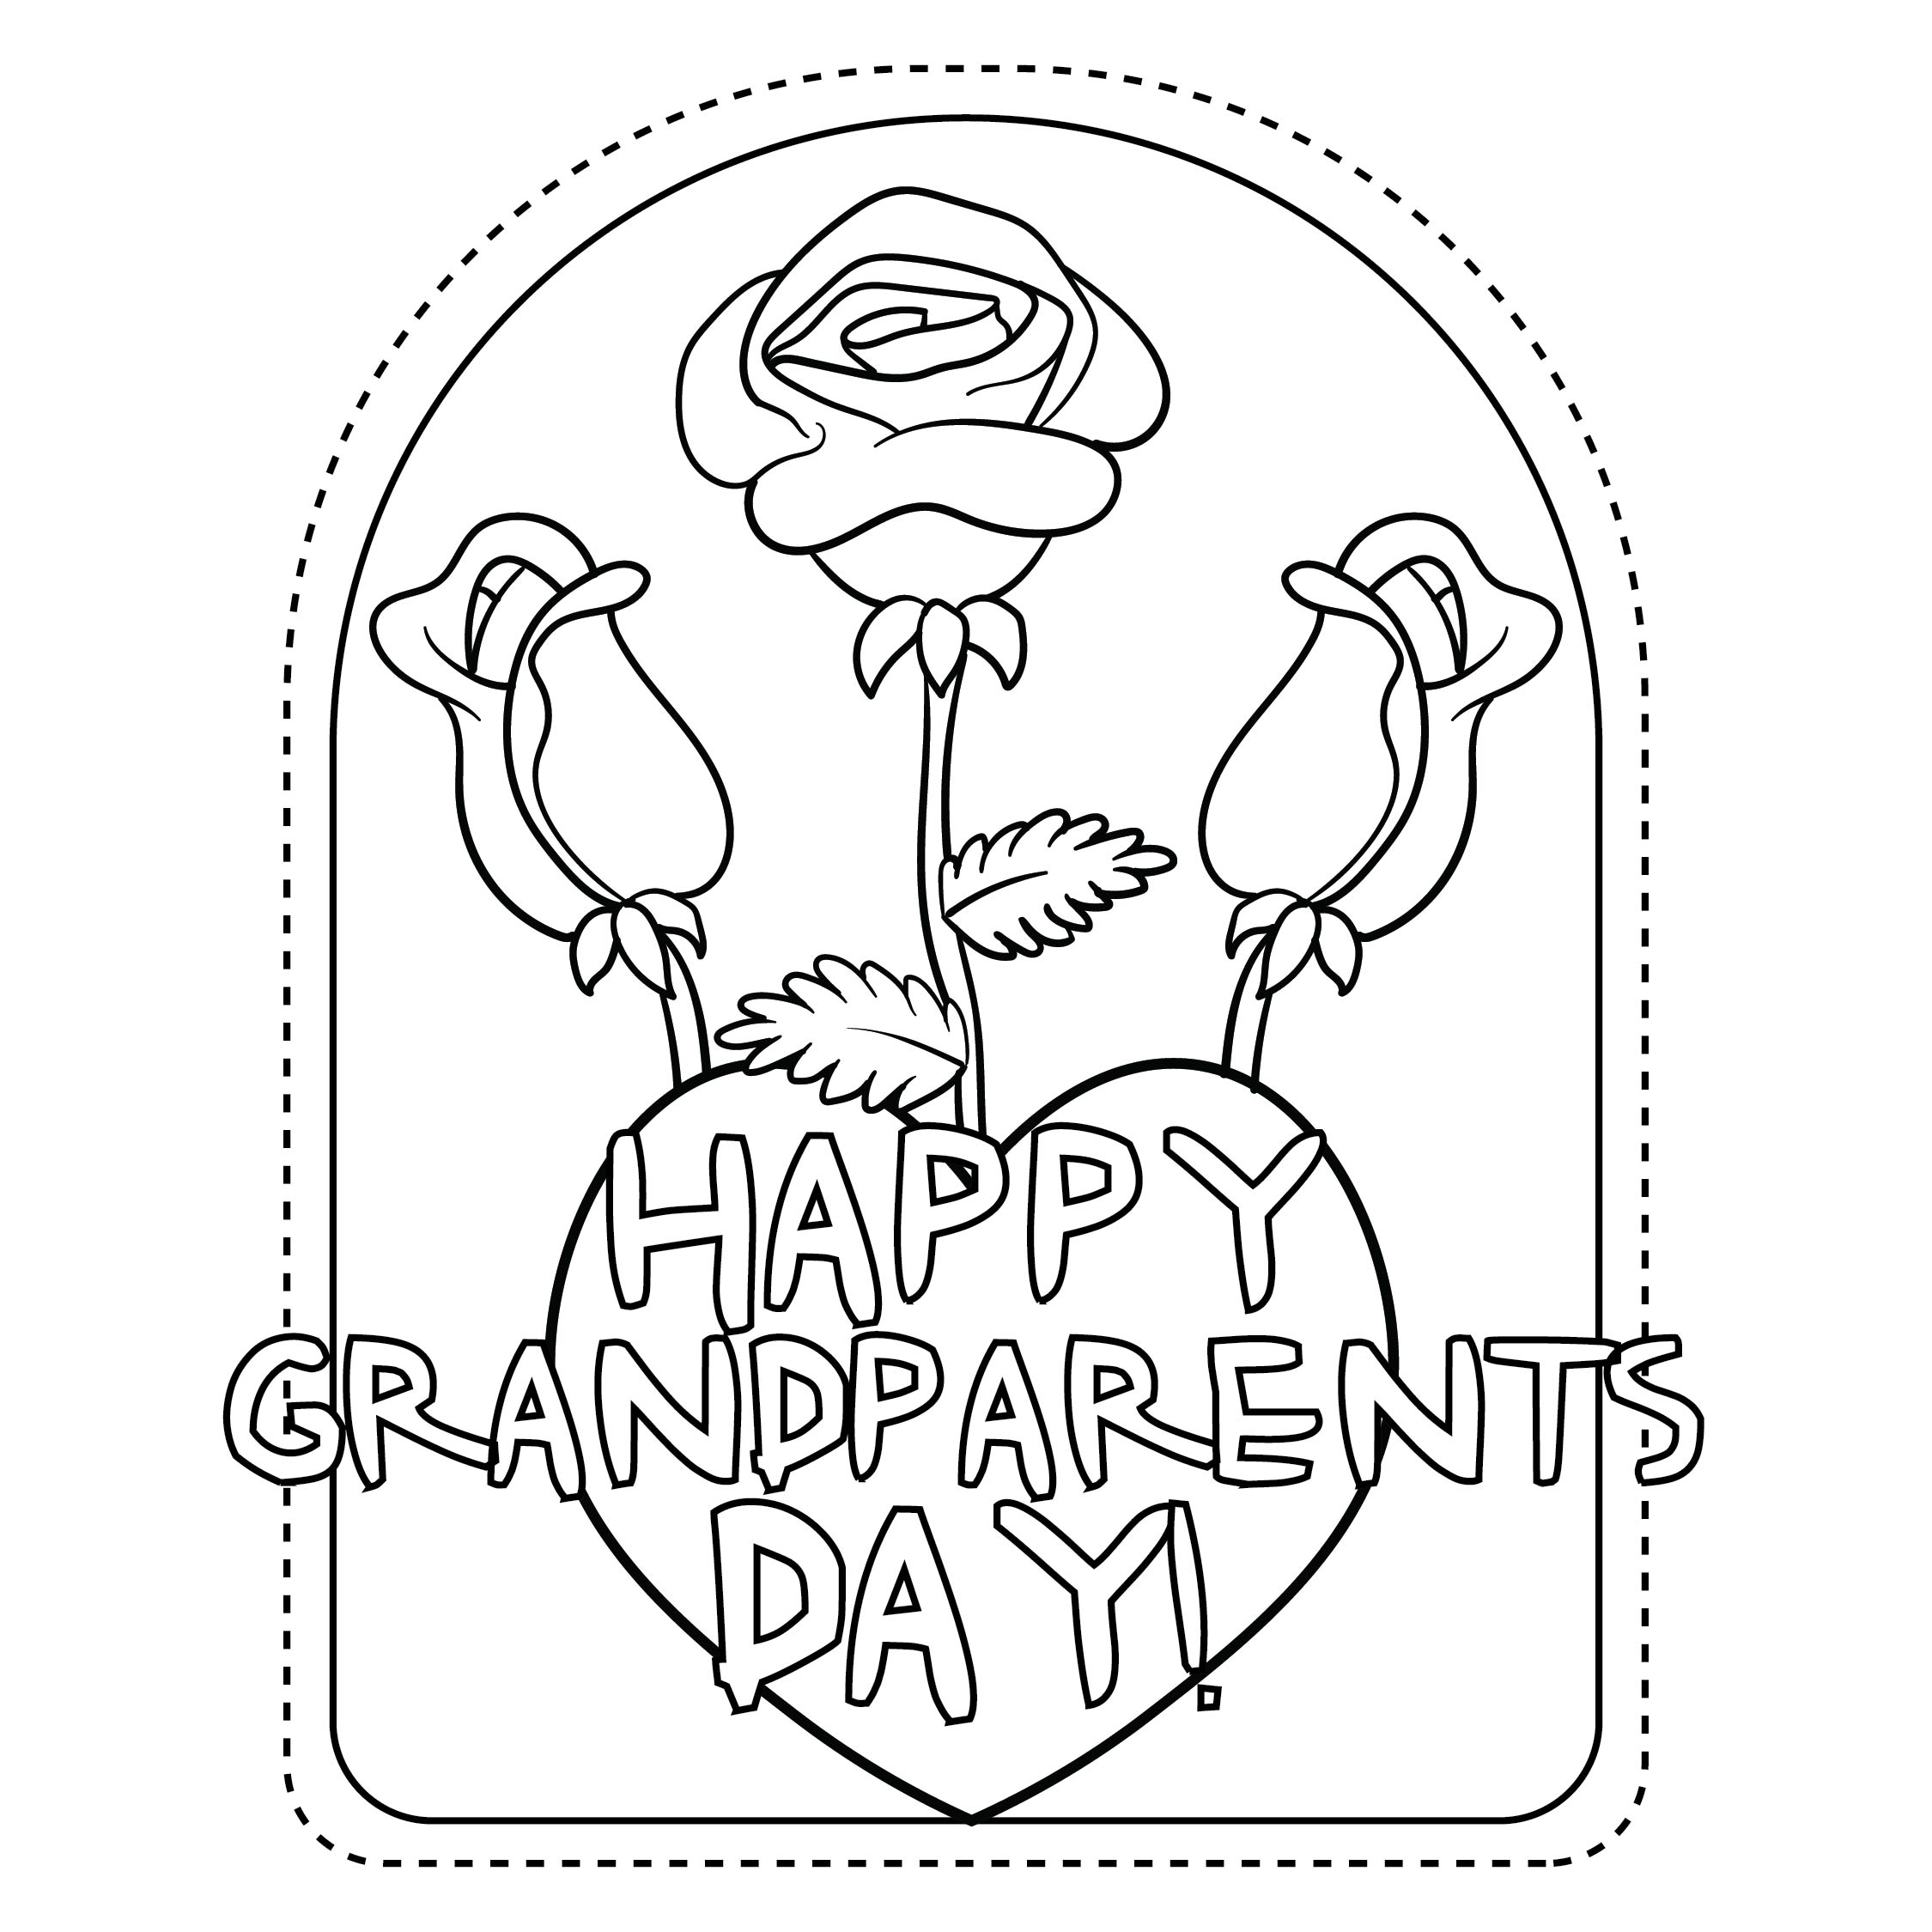 Grandparents Day Card Printables Free